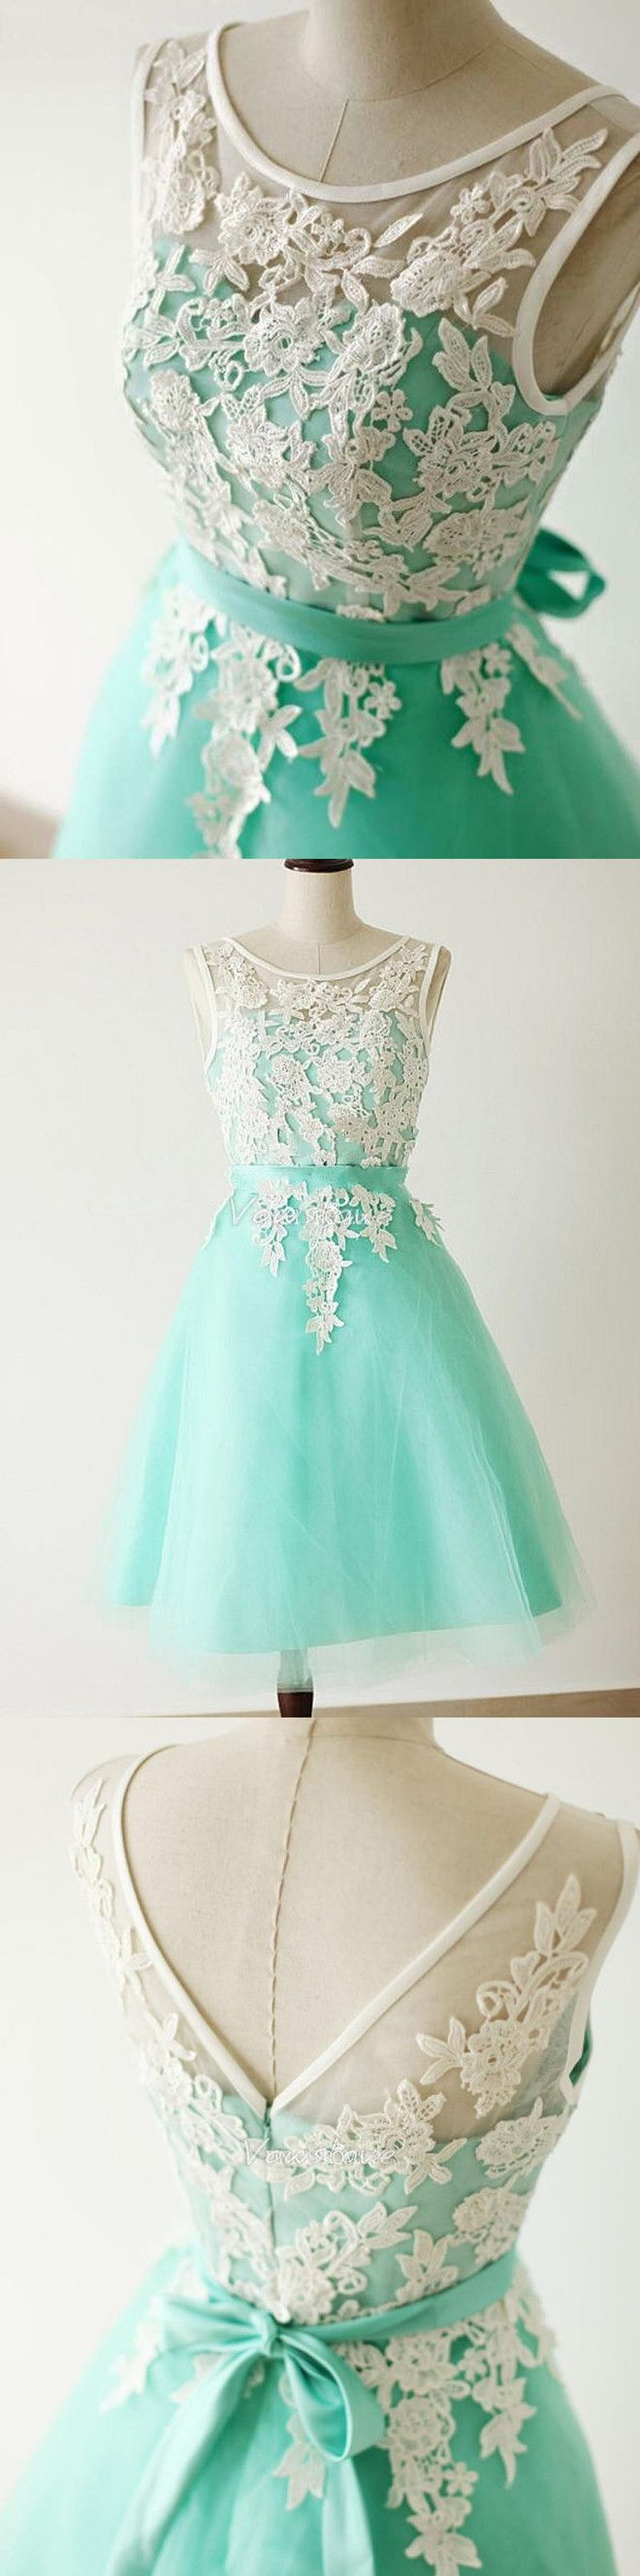 short homecoming dresses,lace homecoming dresses,mint homecoming dresses,short bridesmaid dresses @simpledress2480